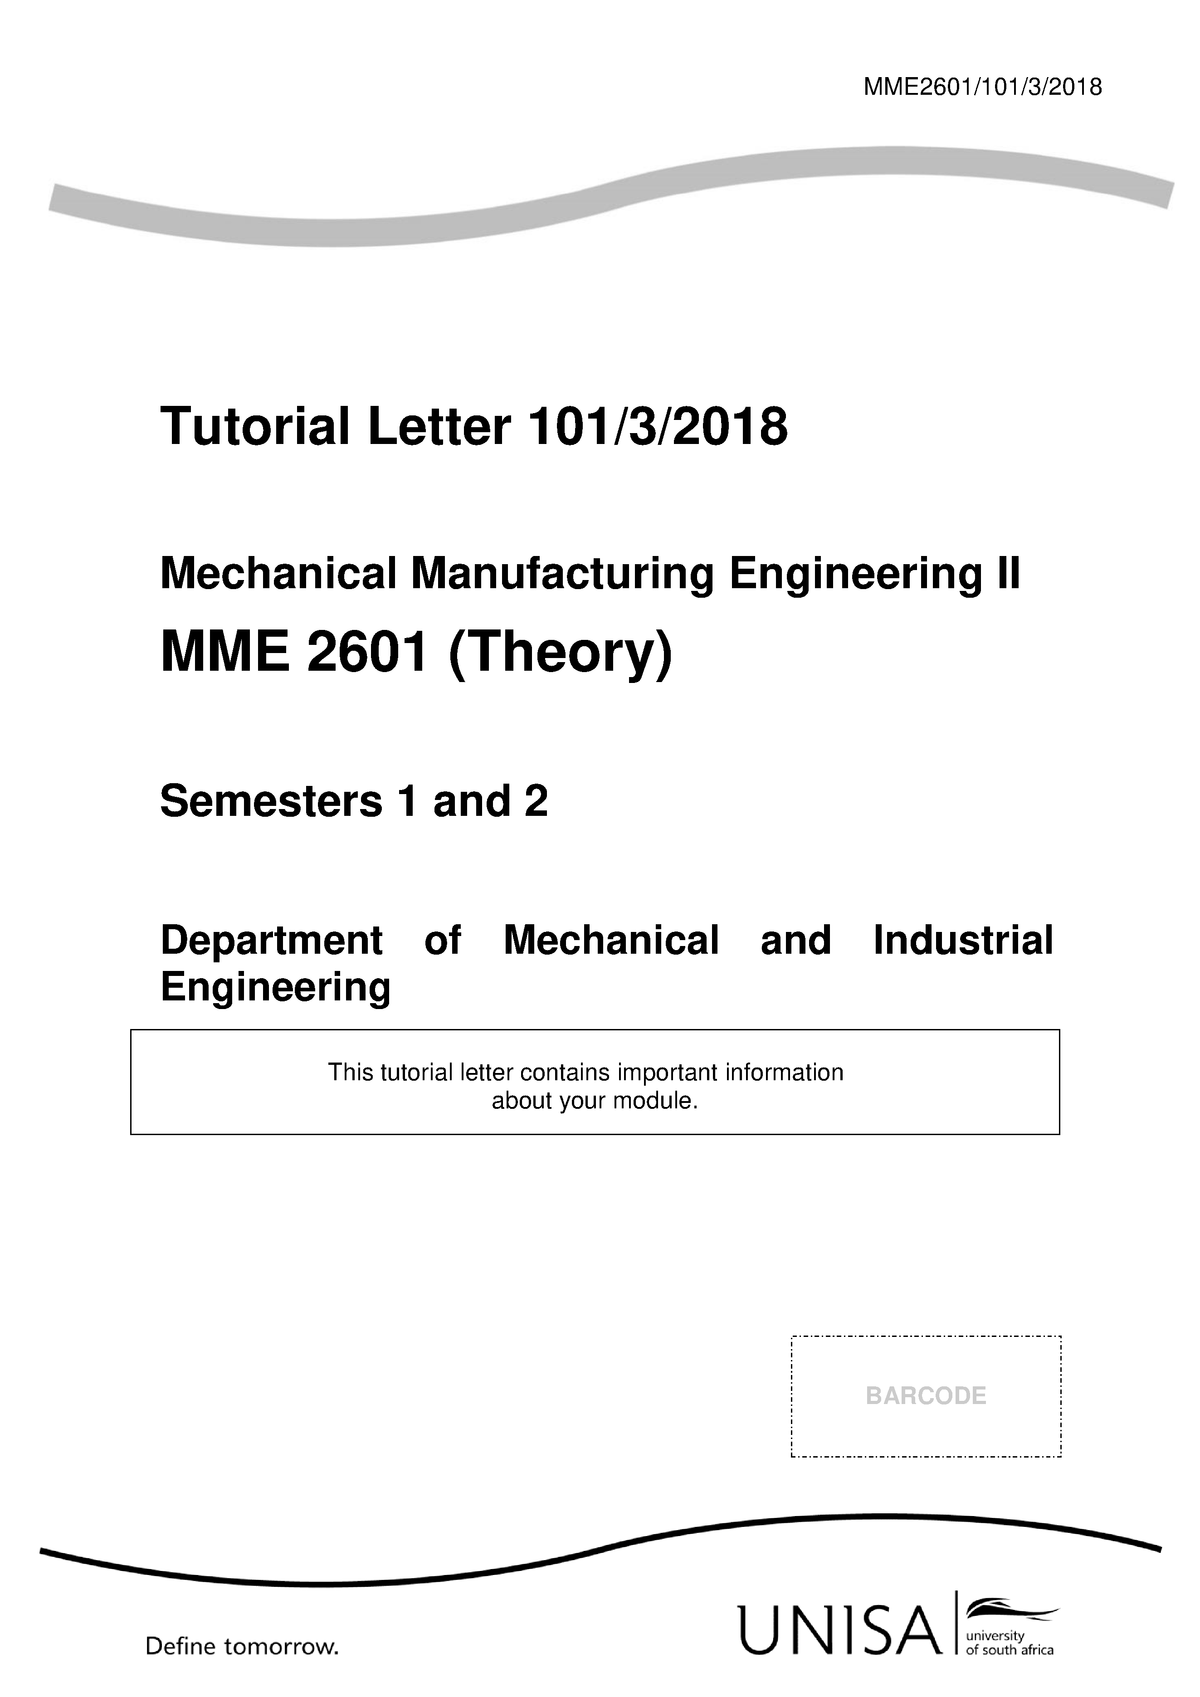 Mme2601 2018 - MME2601: Mechanical Manufacturing Engineering